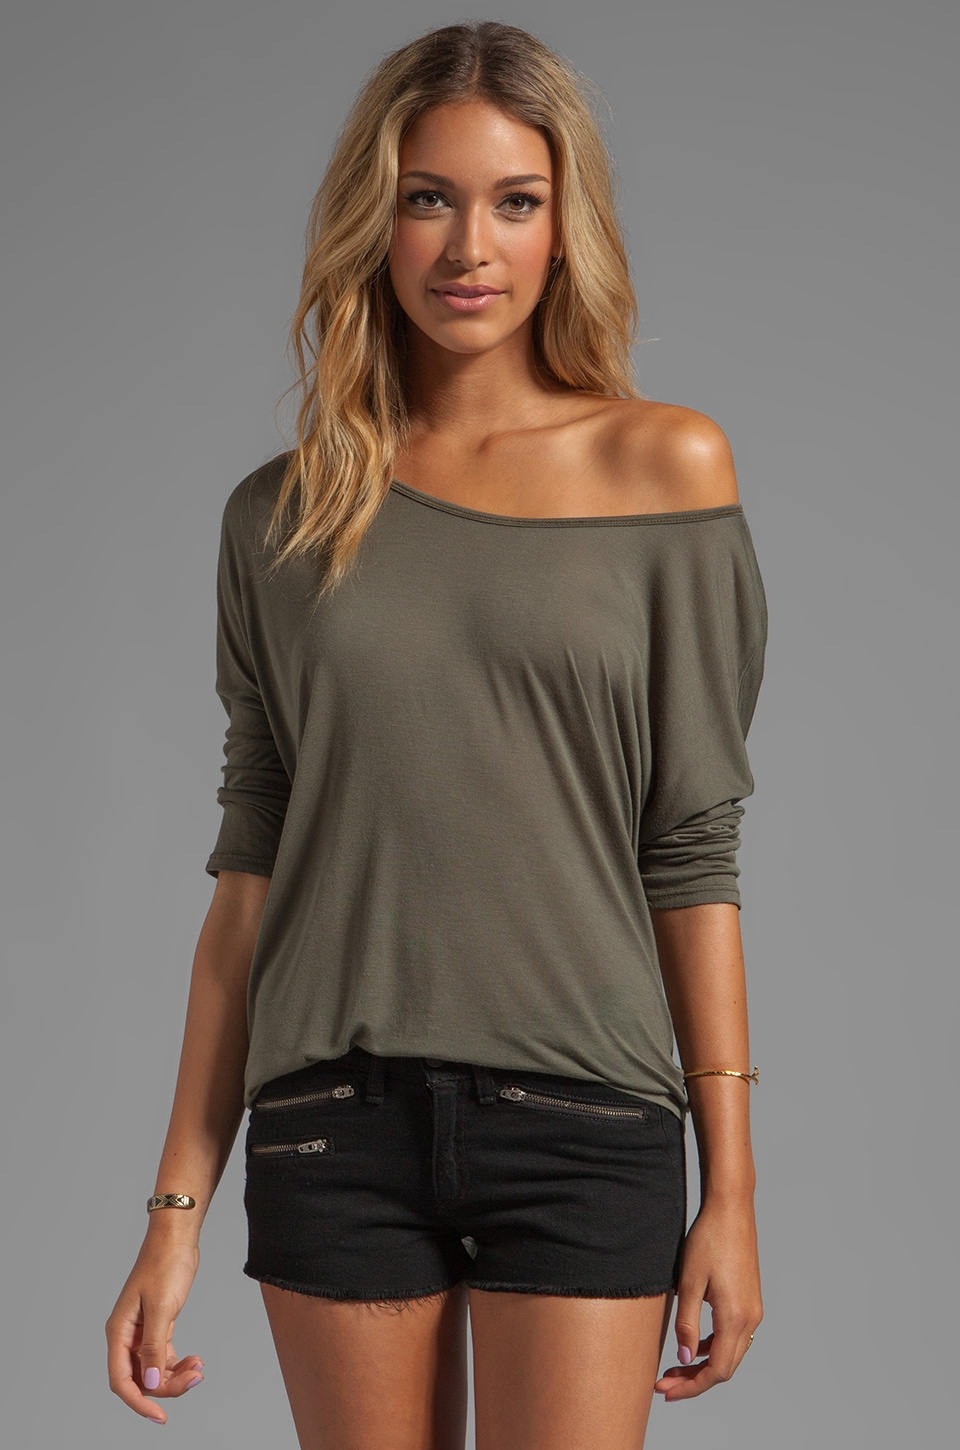 Feel the Piece Back Stitch Top in Army